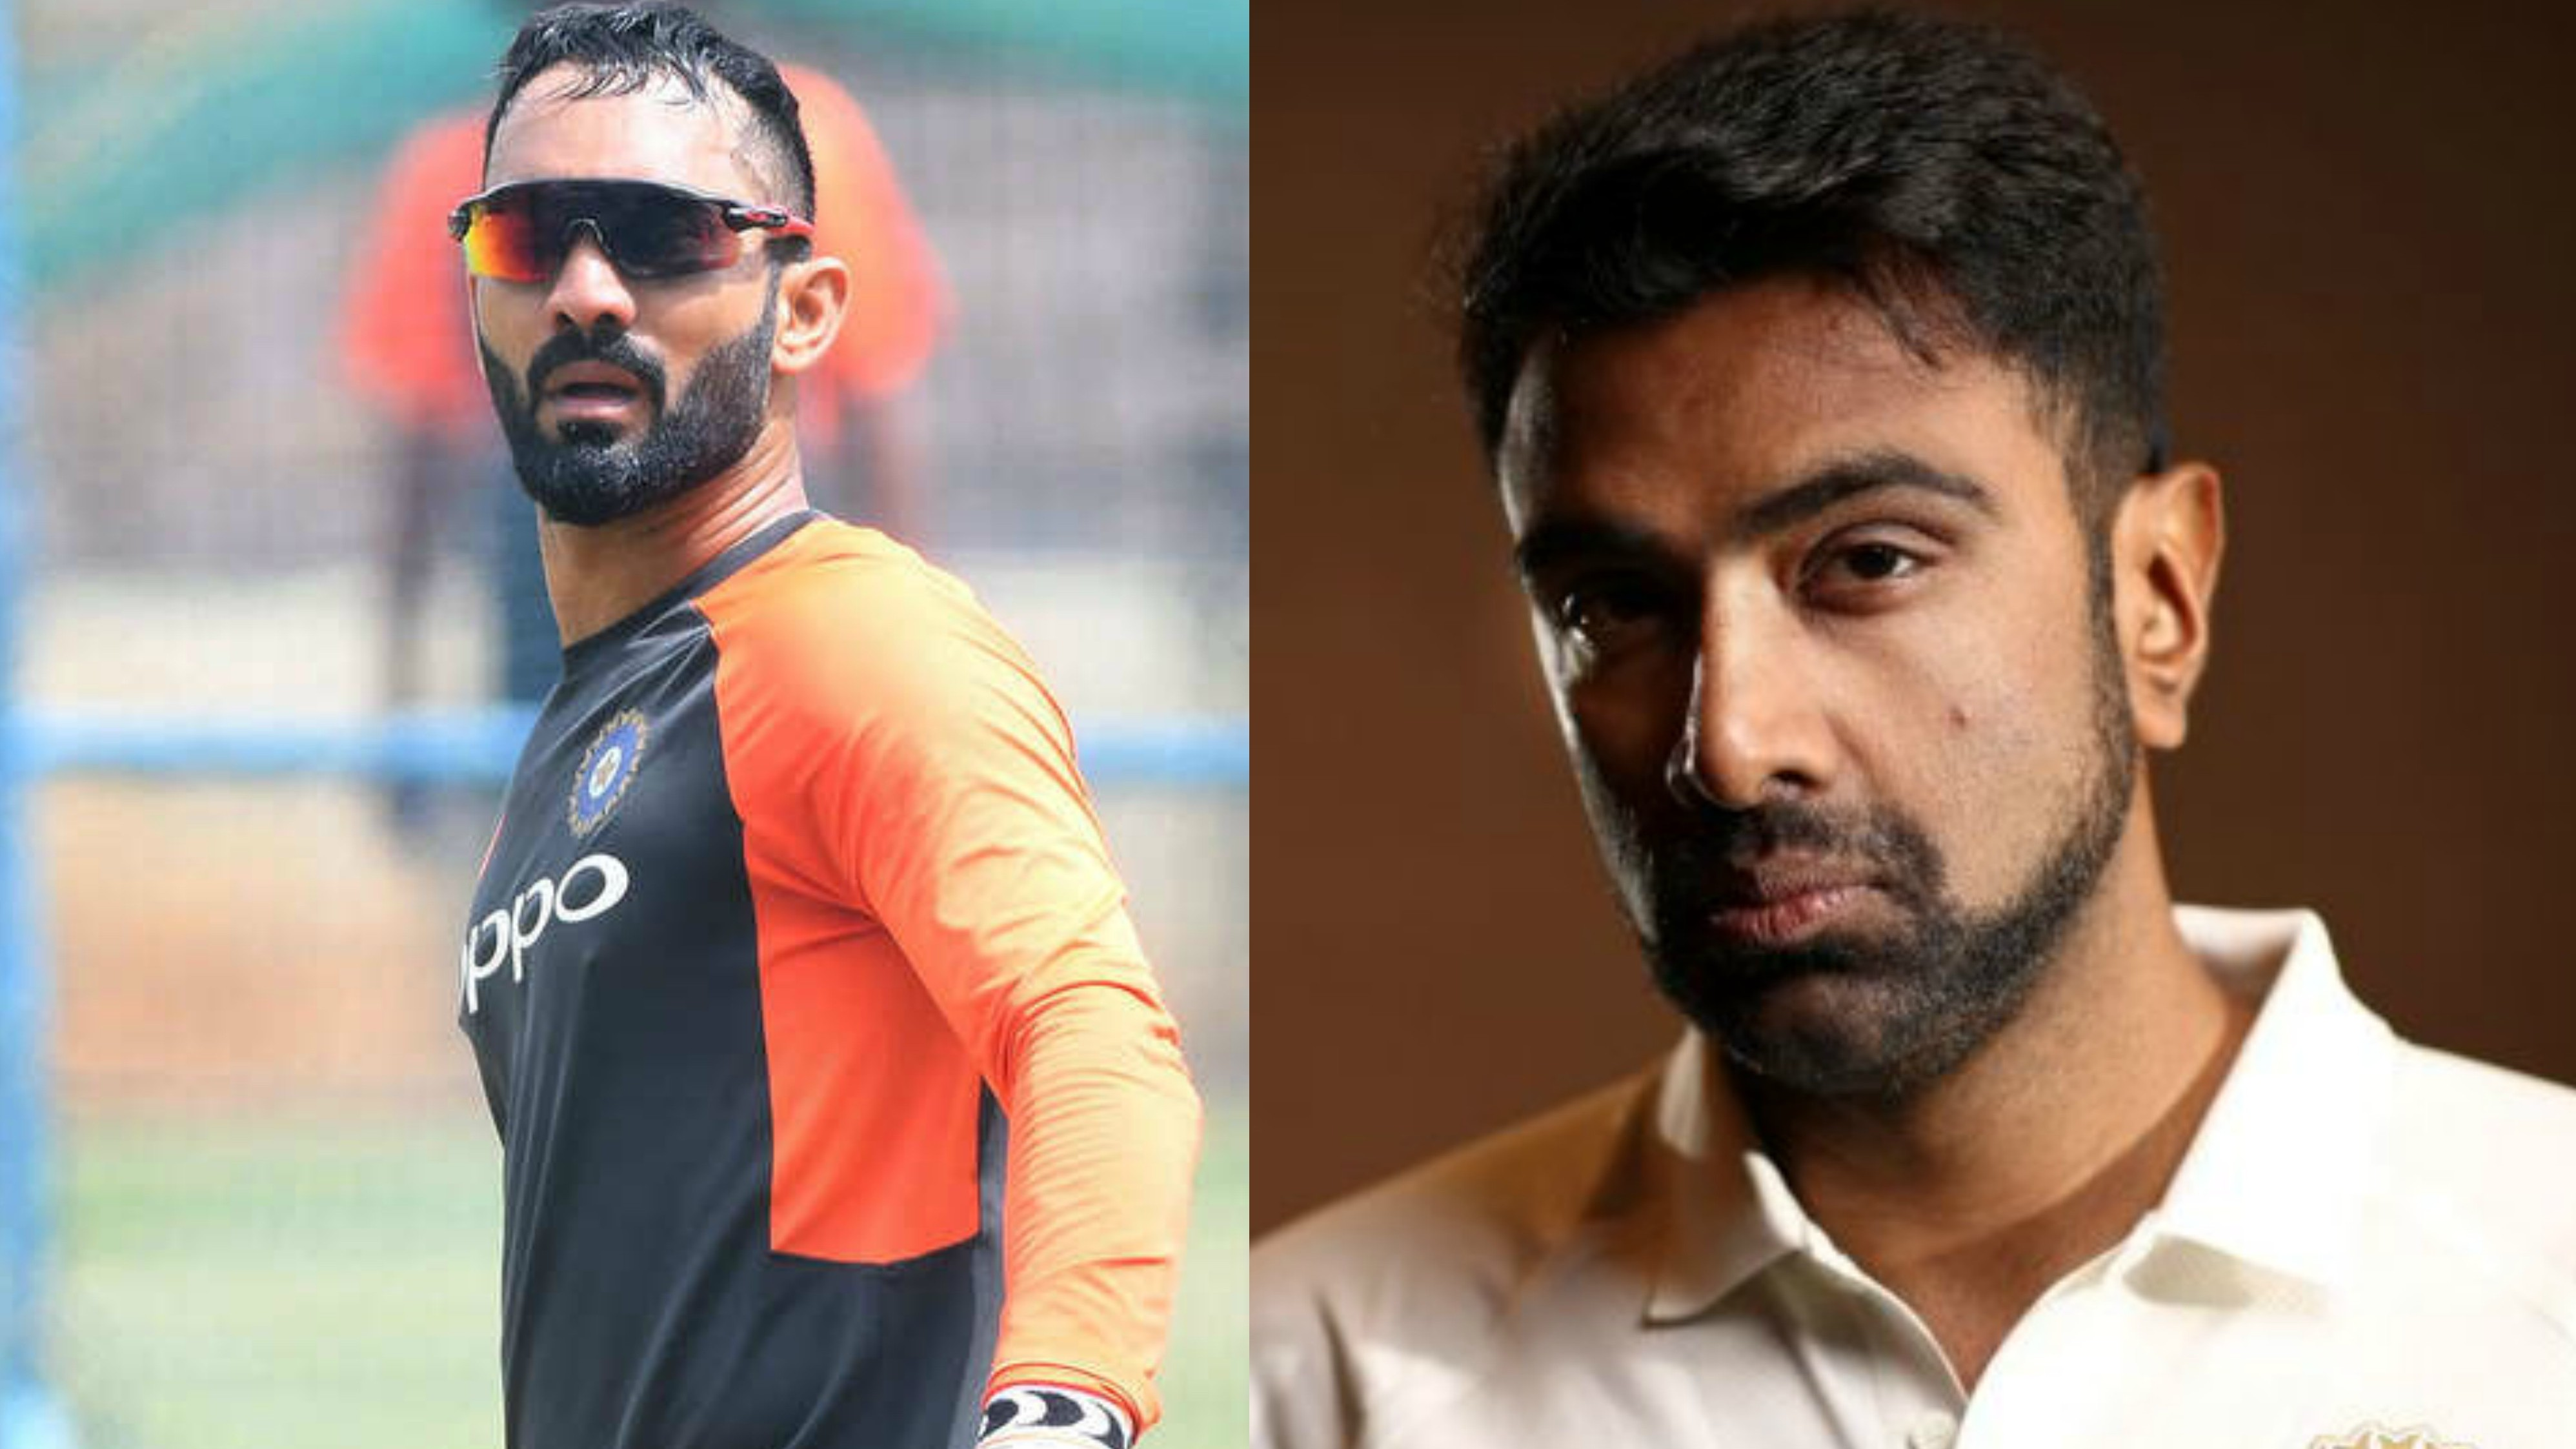 Ranji Trophy 2020: R Ashwin and Dinesh Karthik included in Tamil Nadu squad for next two games